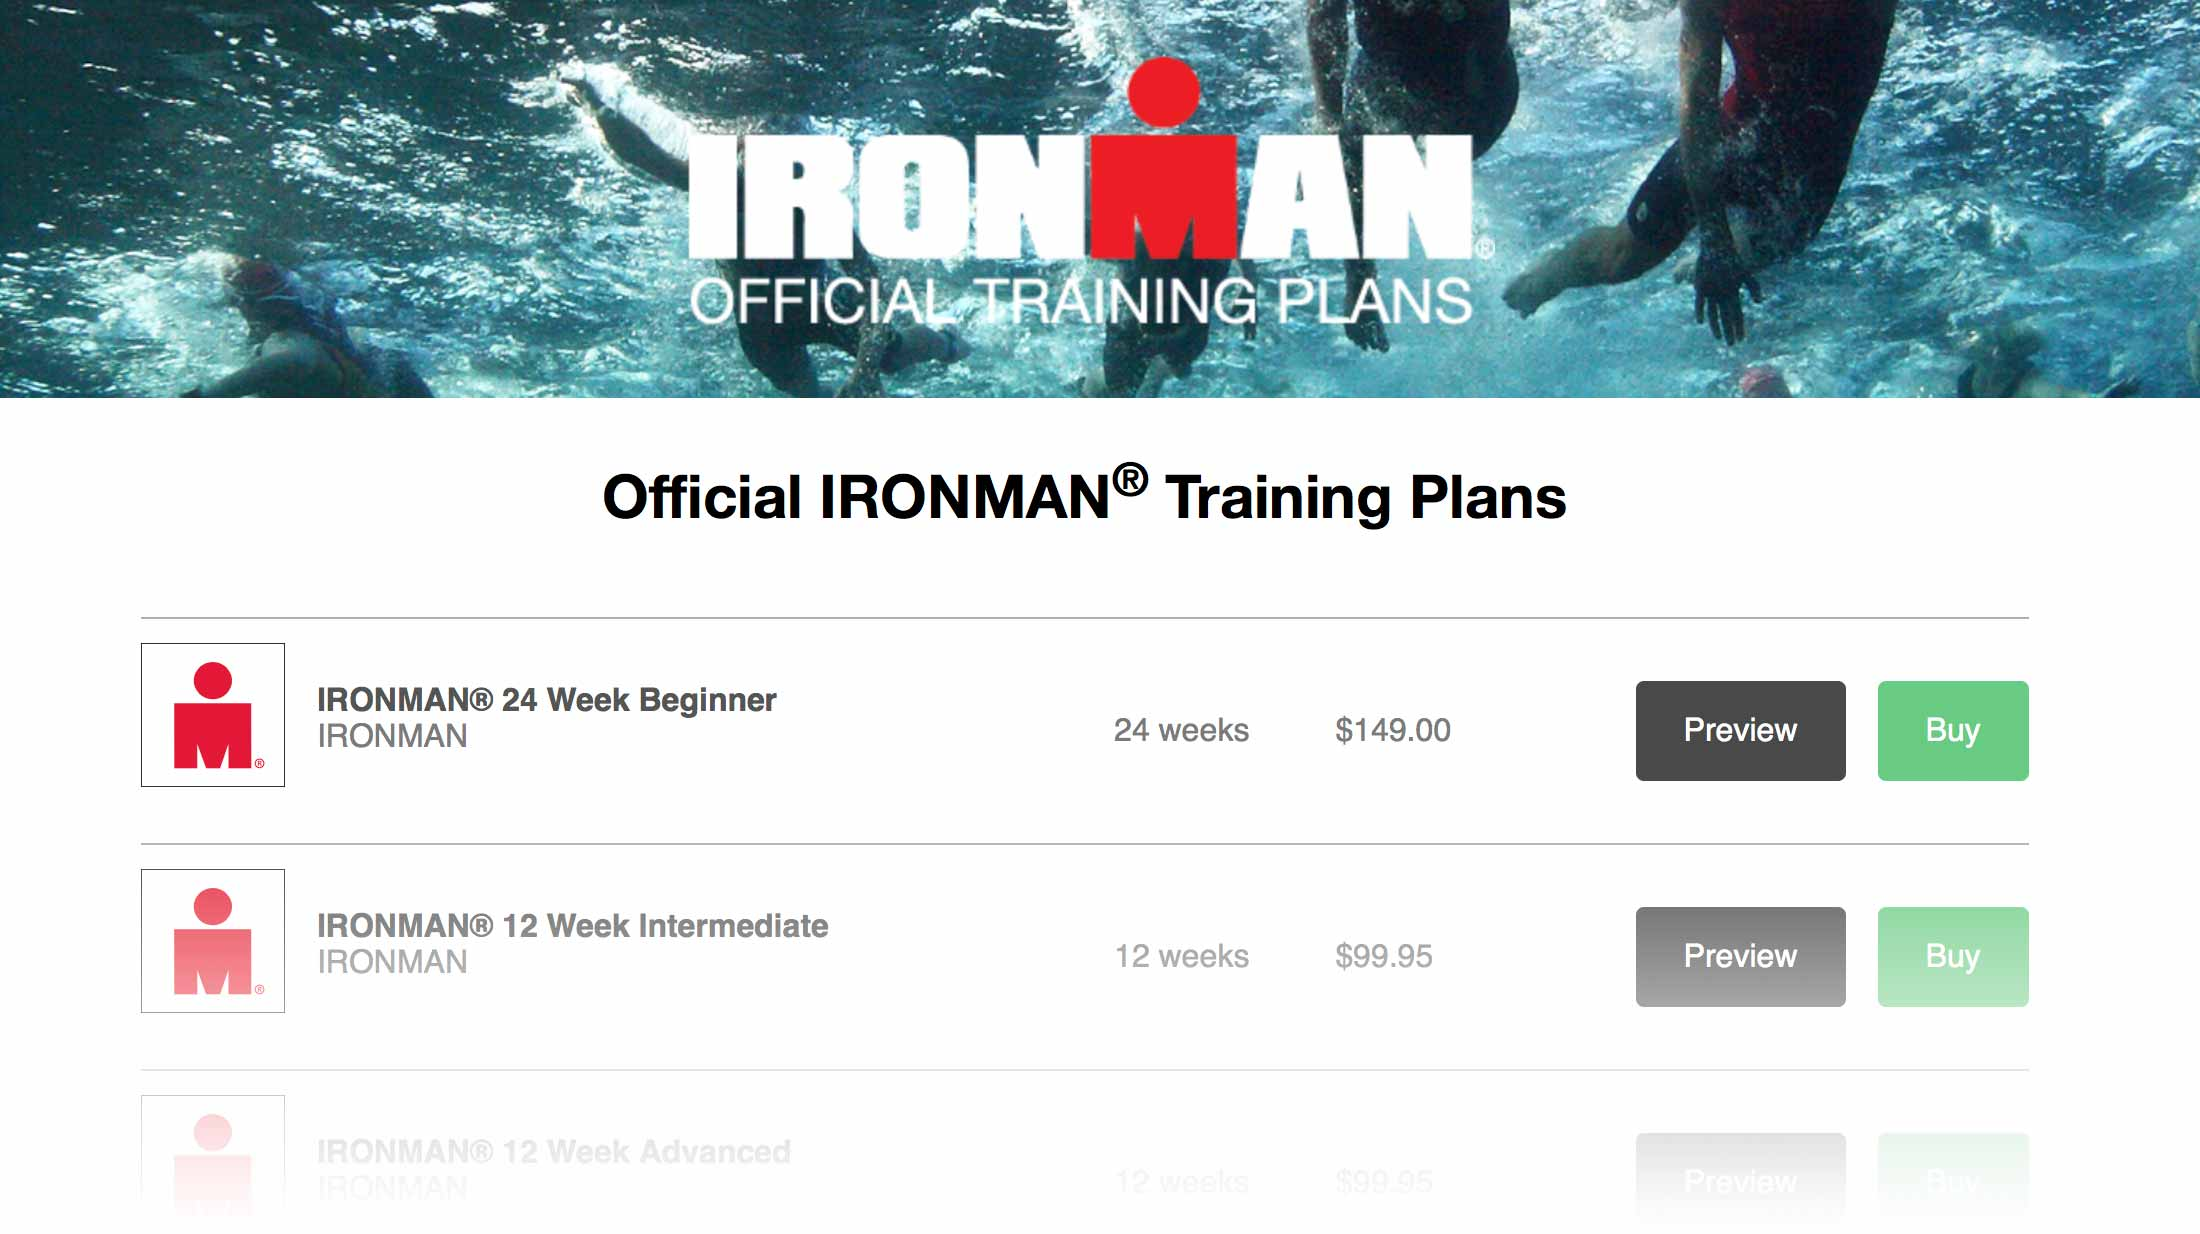 IRONMAN Training Plan Store